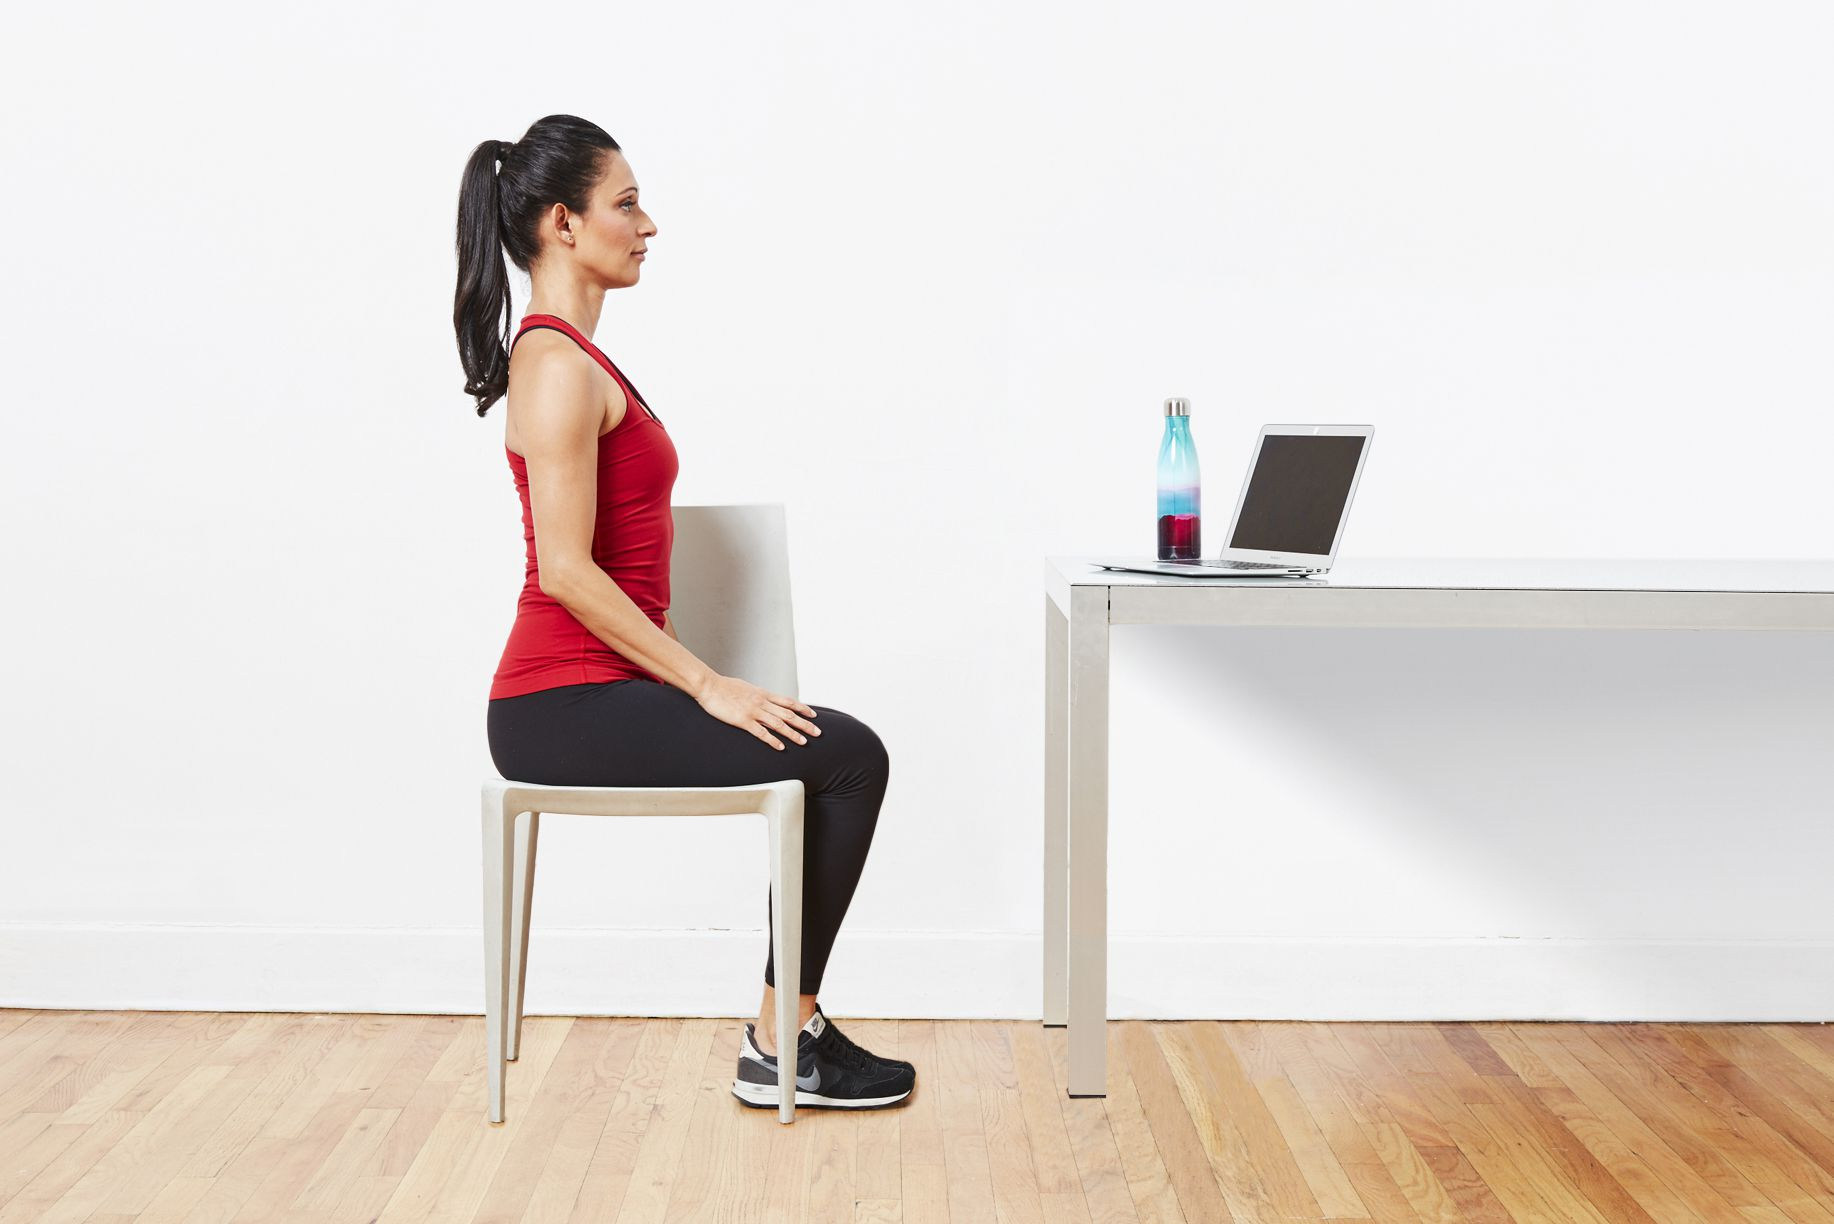 Chair Exercises For Obese Office Workout Moves You Can Do Right At Your Desk